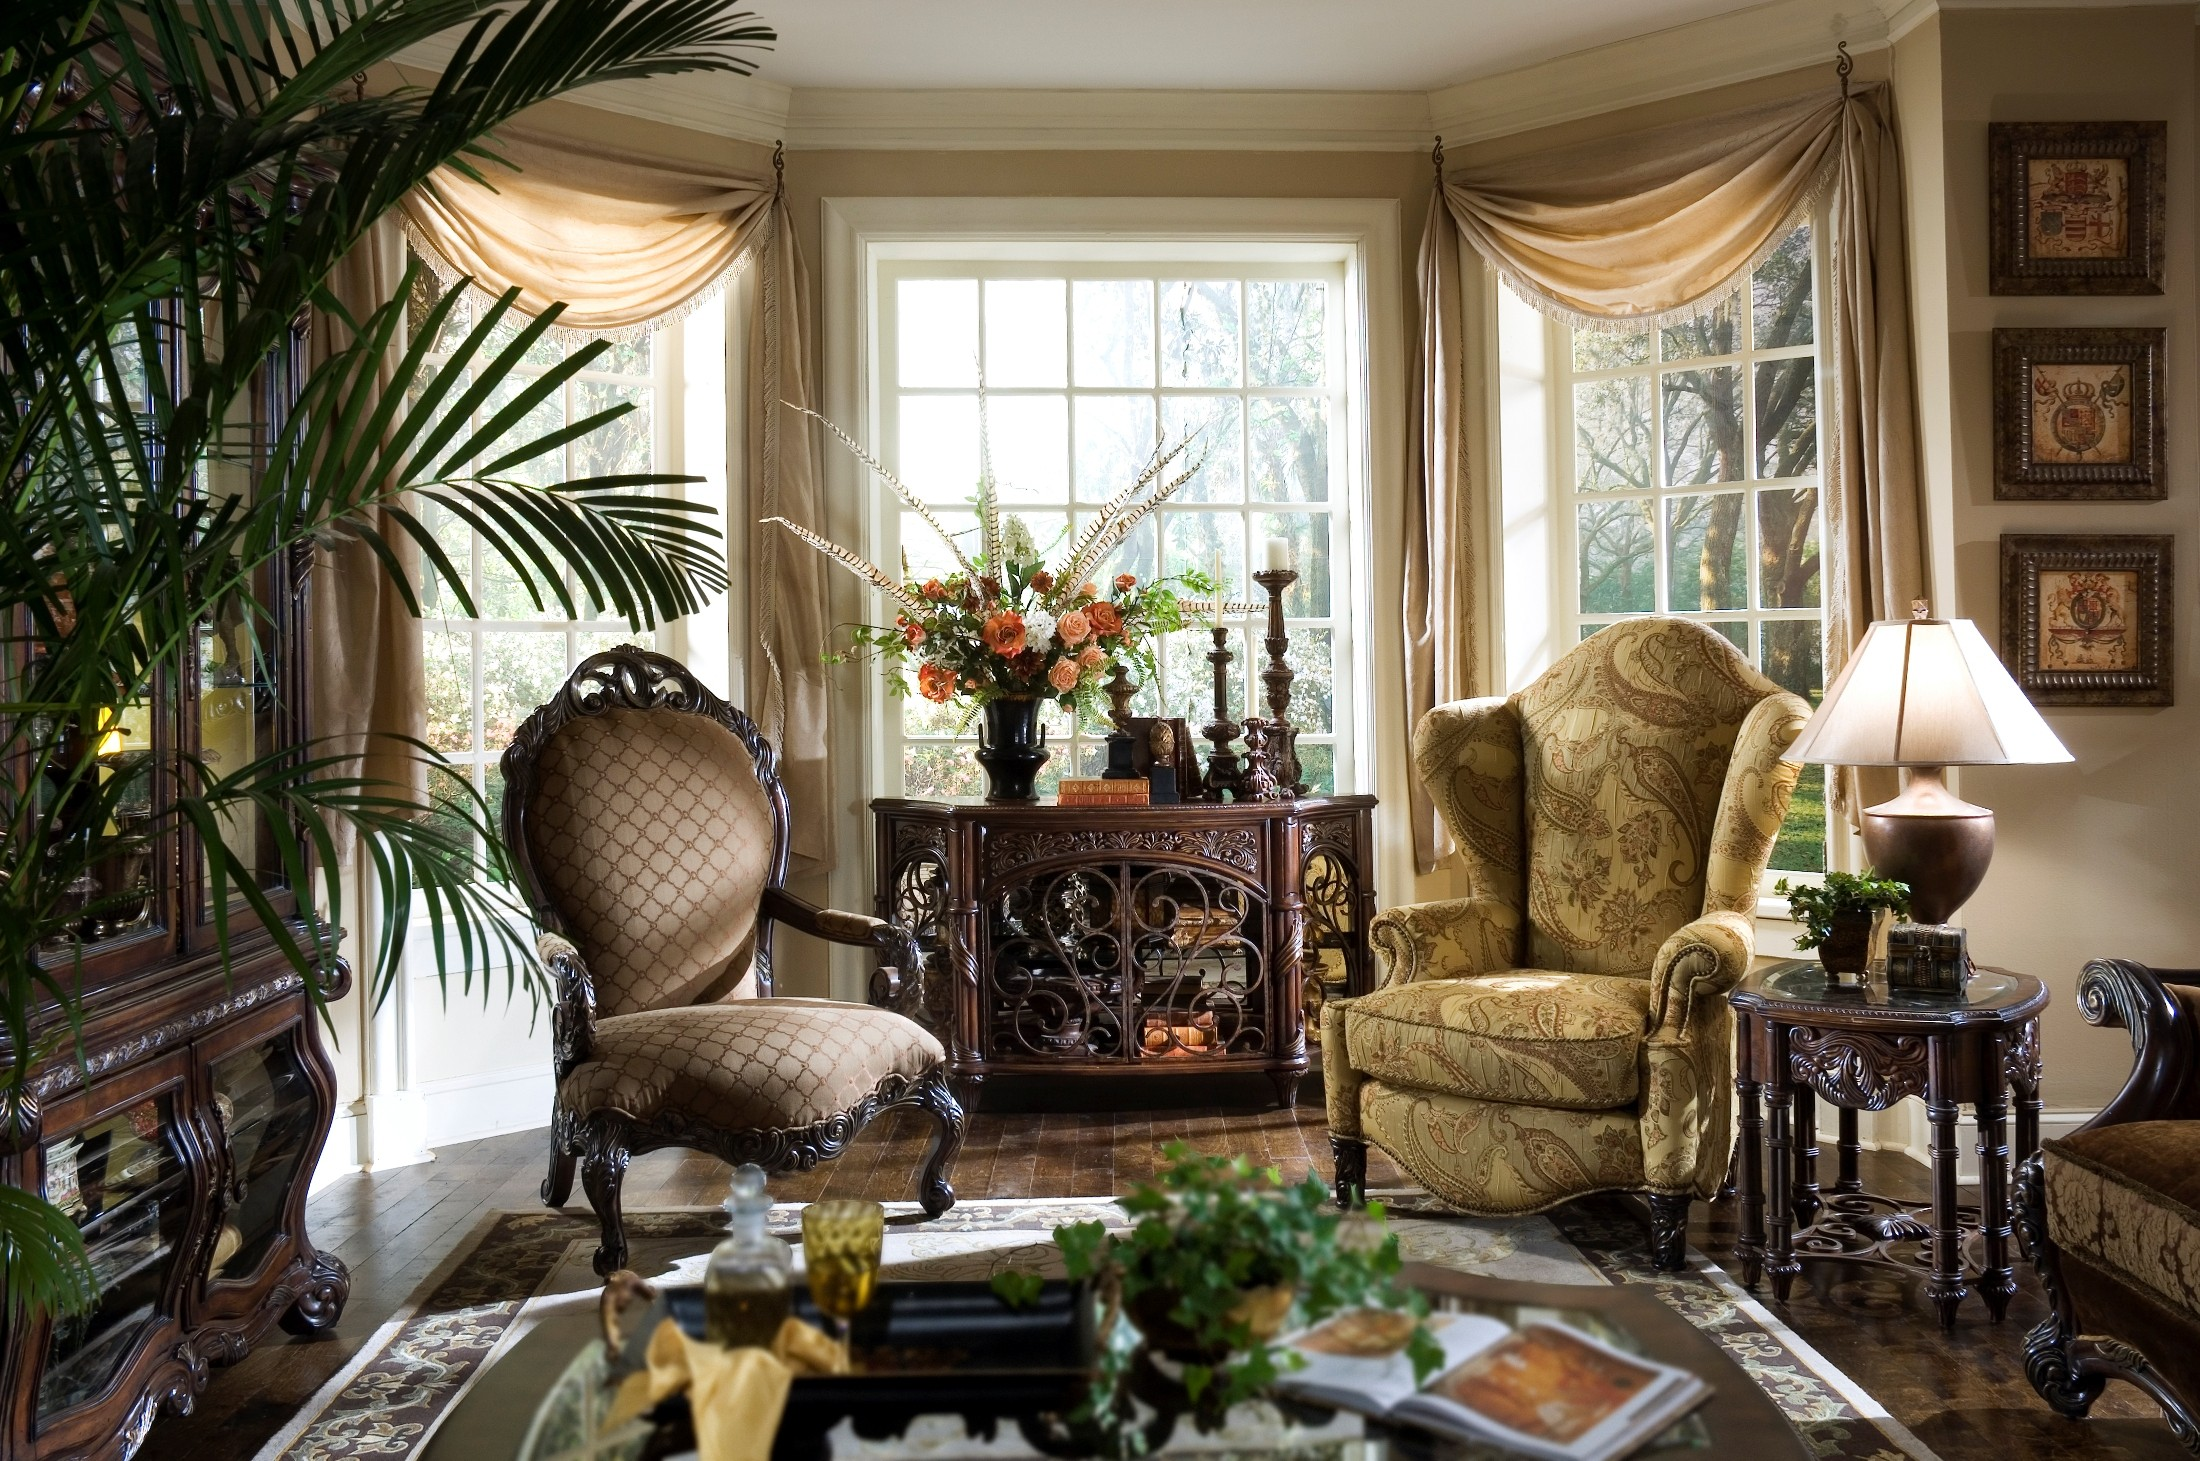 essex manor living room set from aico 76815 coleman furniture. Black Bedroom Furniture Sets. Home Design Ideas